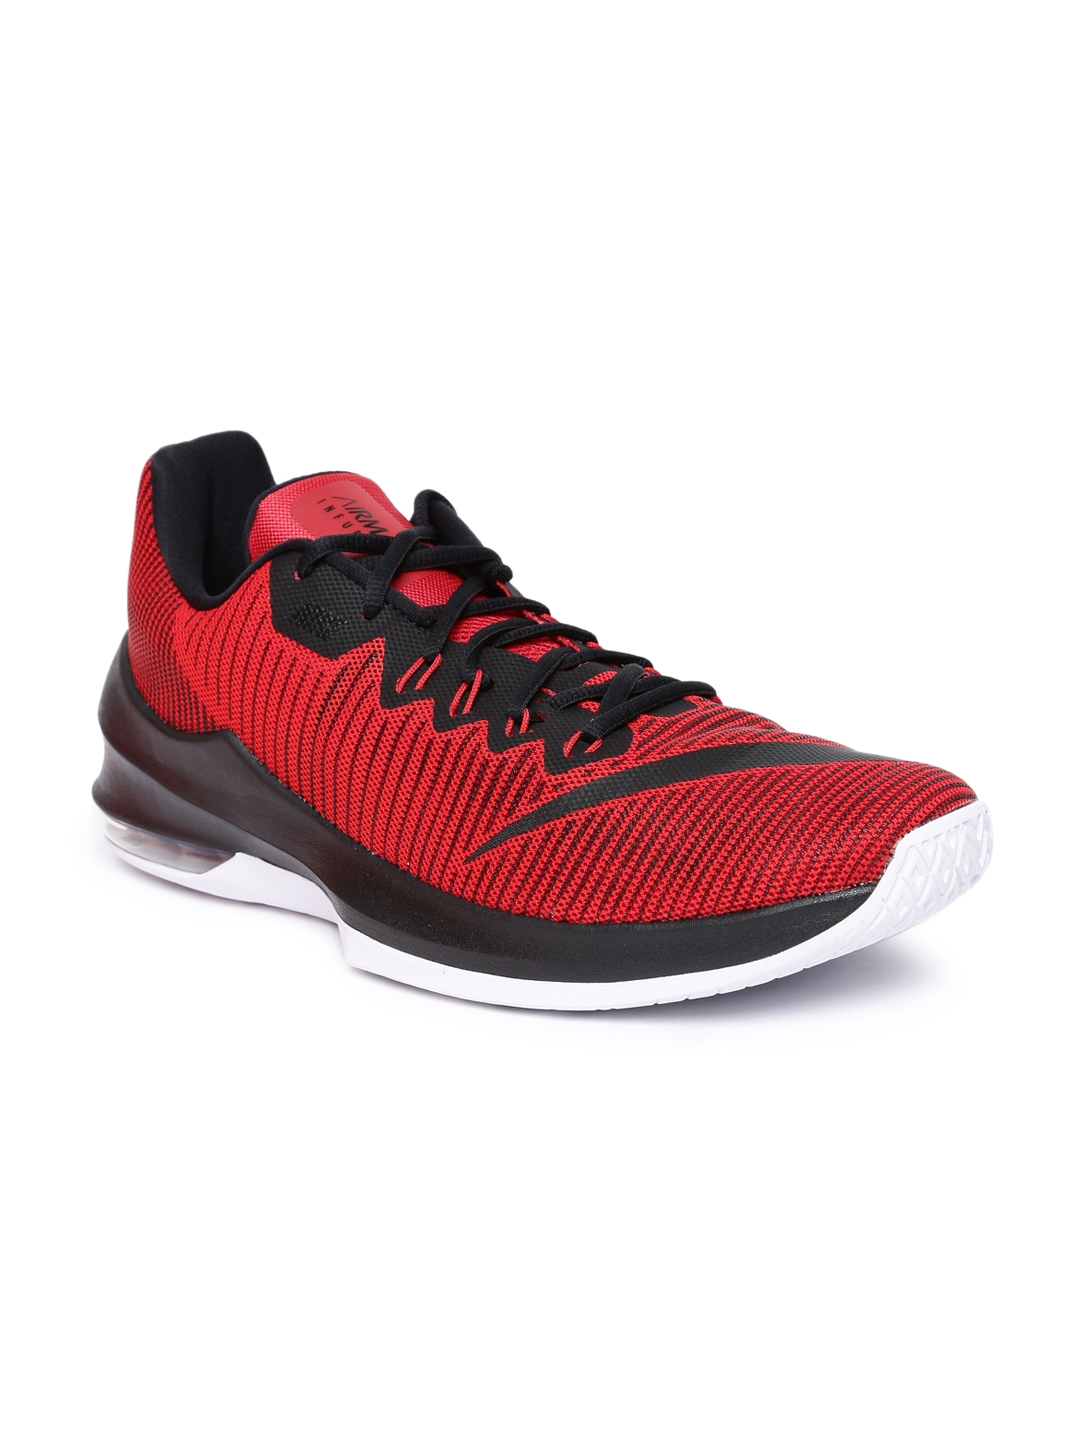 Buy Nike Men Red AIR MAX INFURIATE 2 LOW Basketball Shoes - Sports ... f2a0b16d2aa9